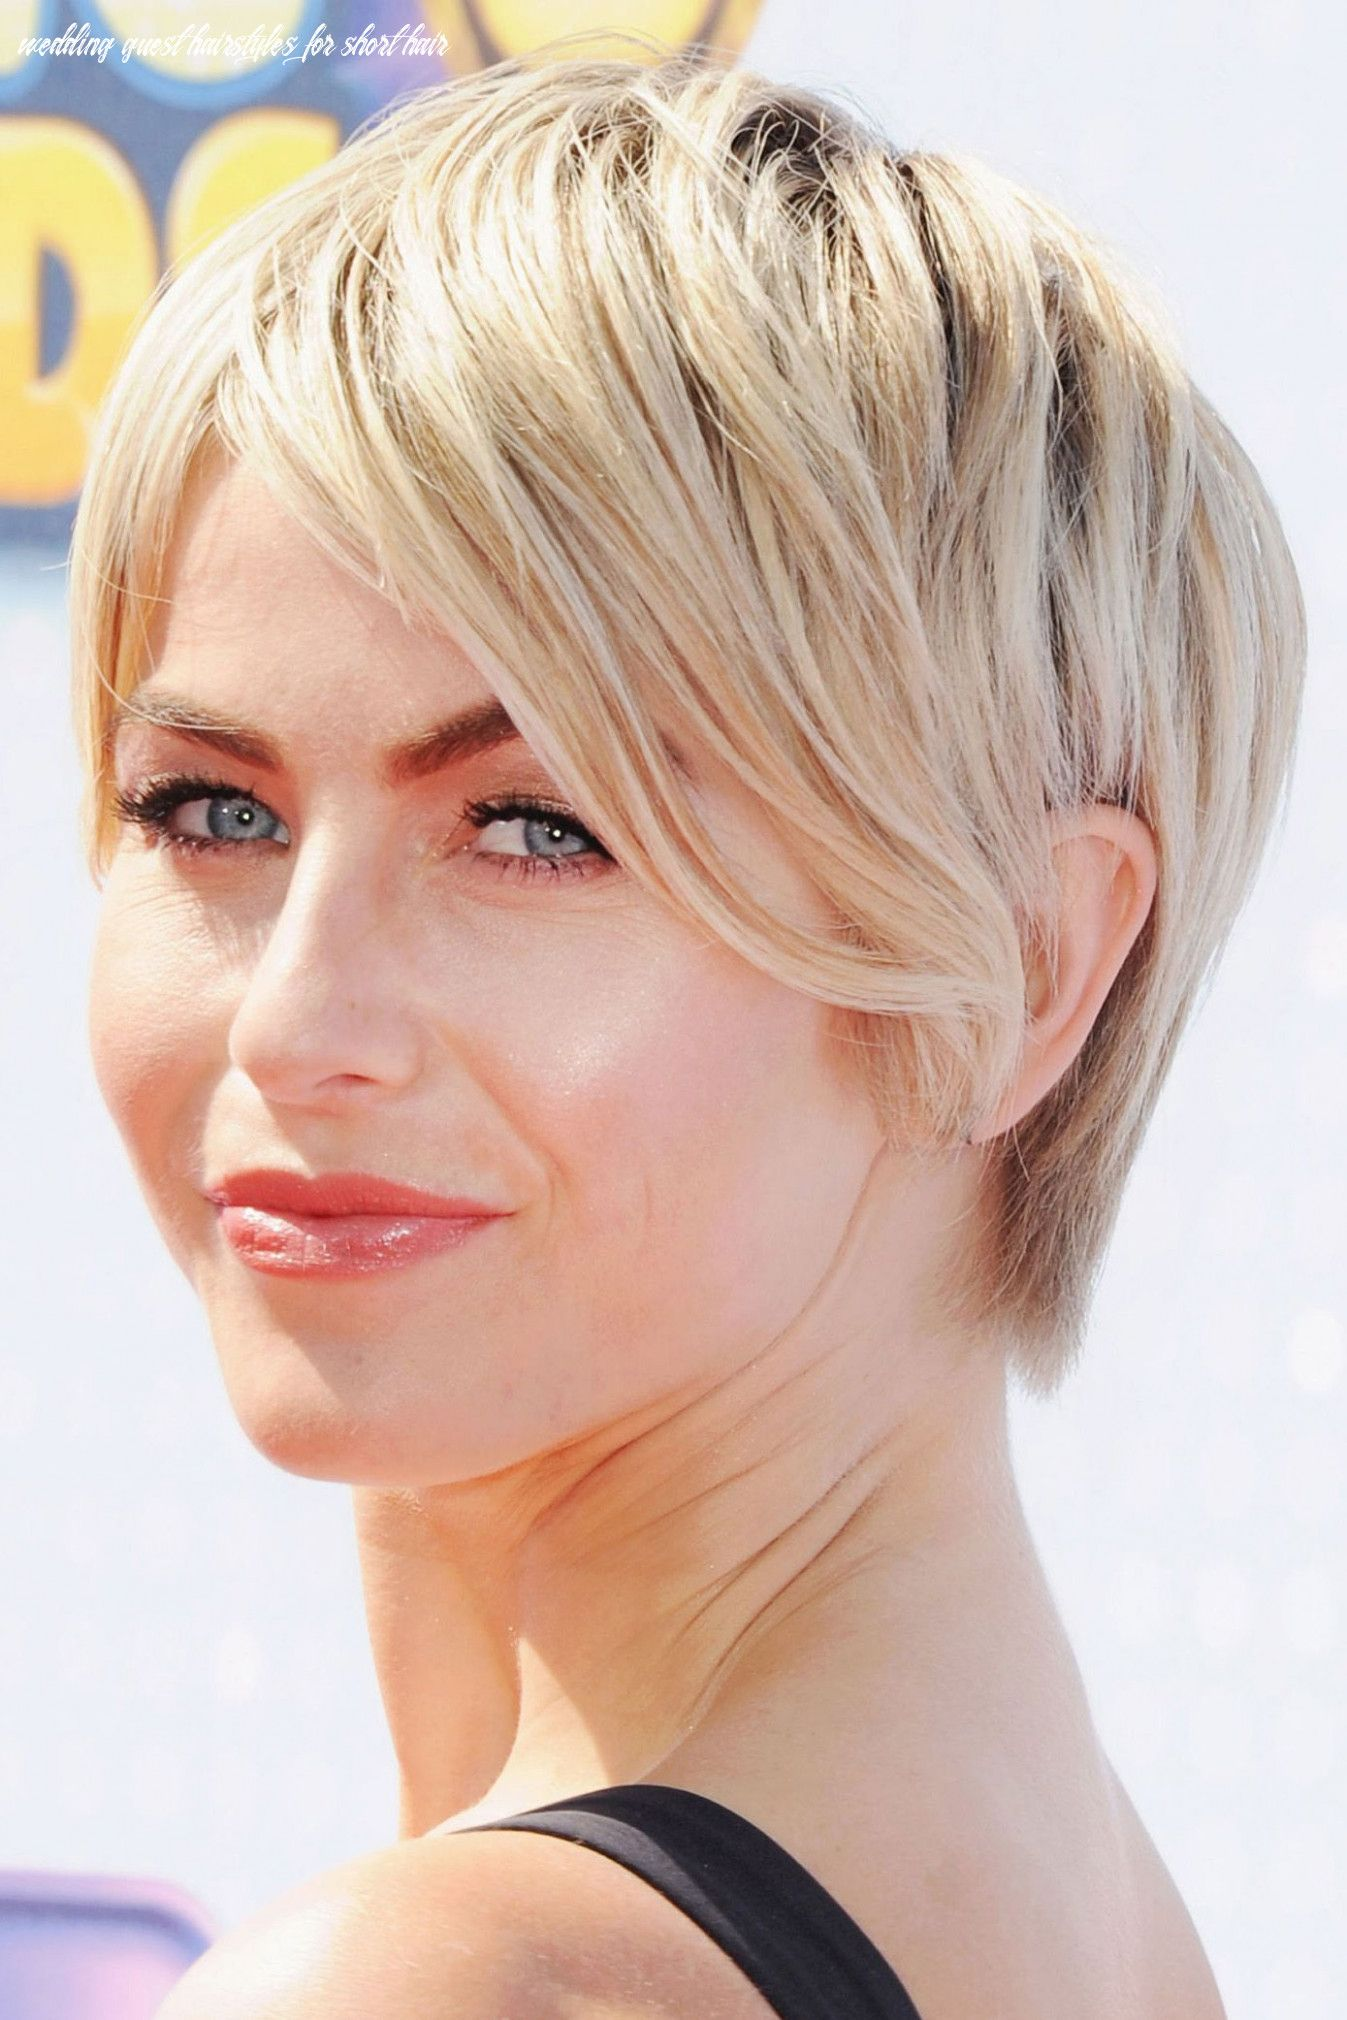 12 Wedding Guest Hairstyles For Short Hair in 2020 | Guest hair, Wedding guest hairstyles ...